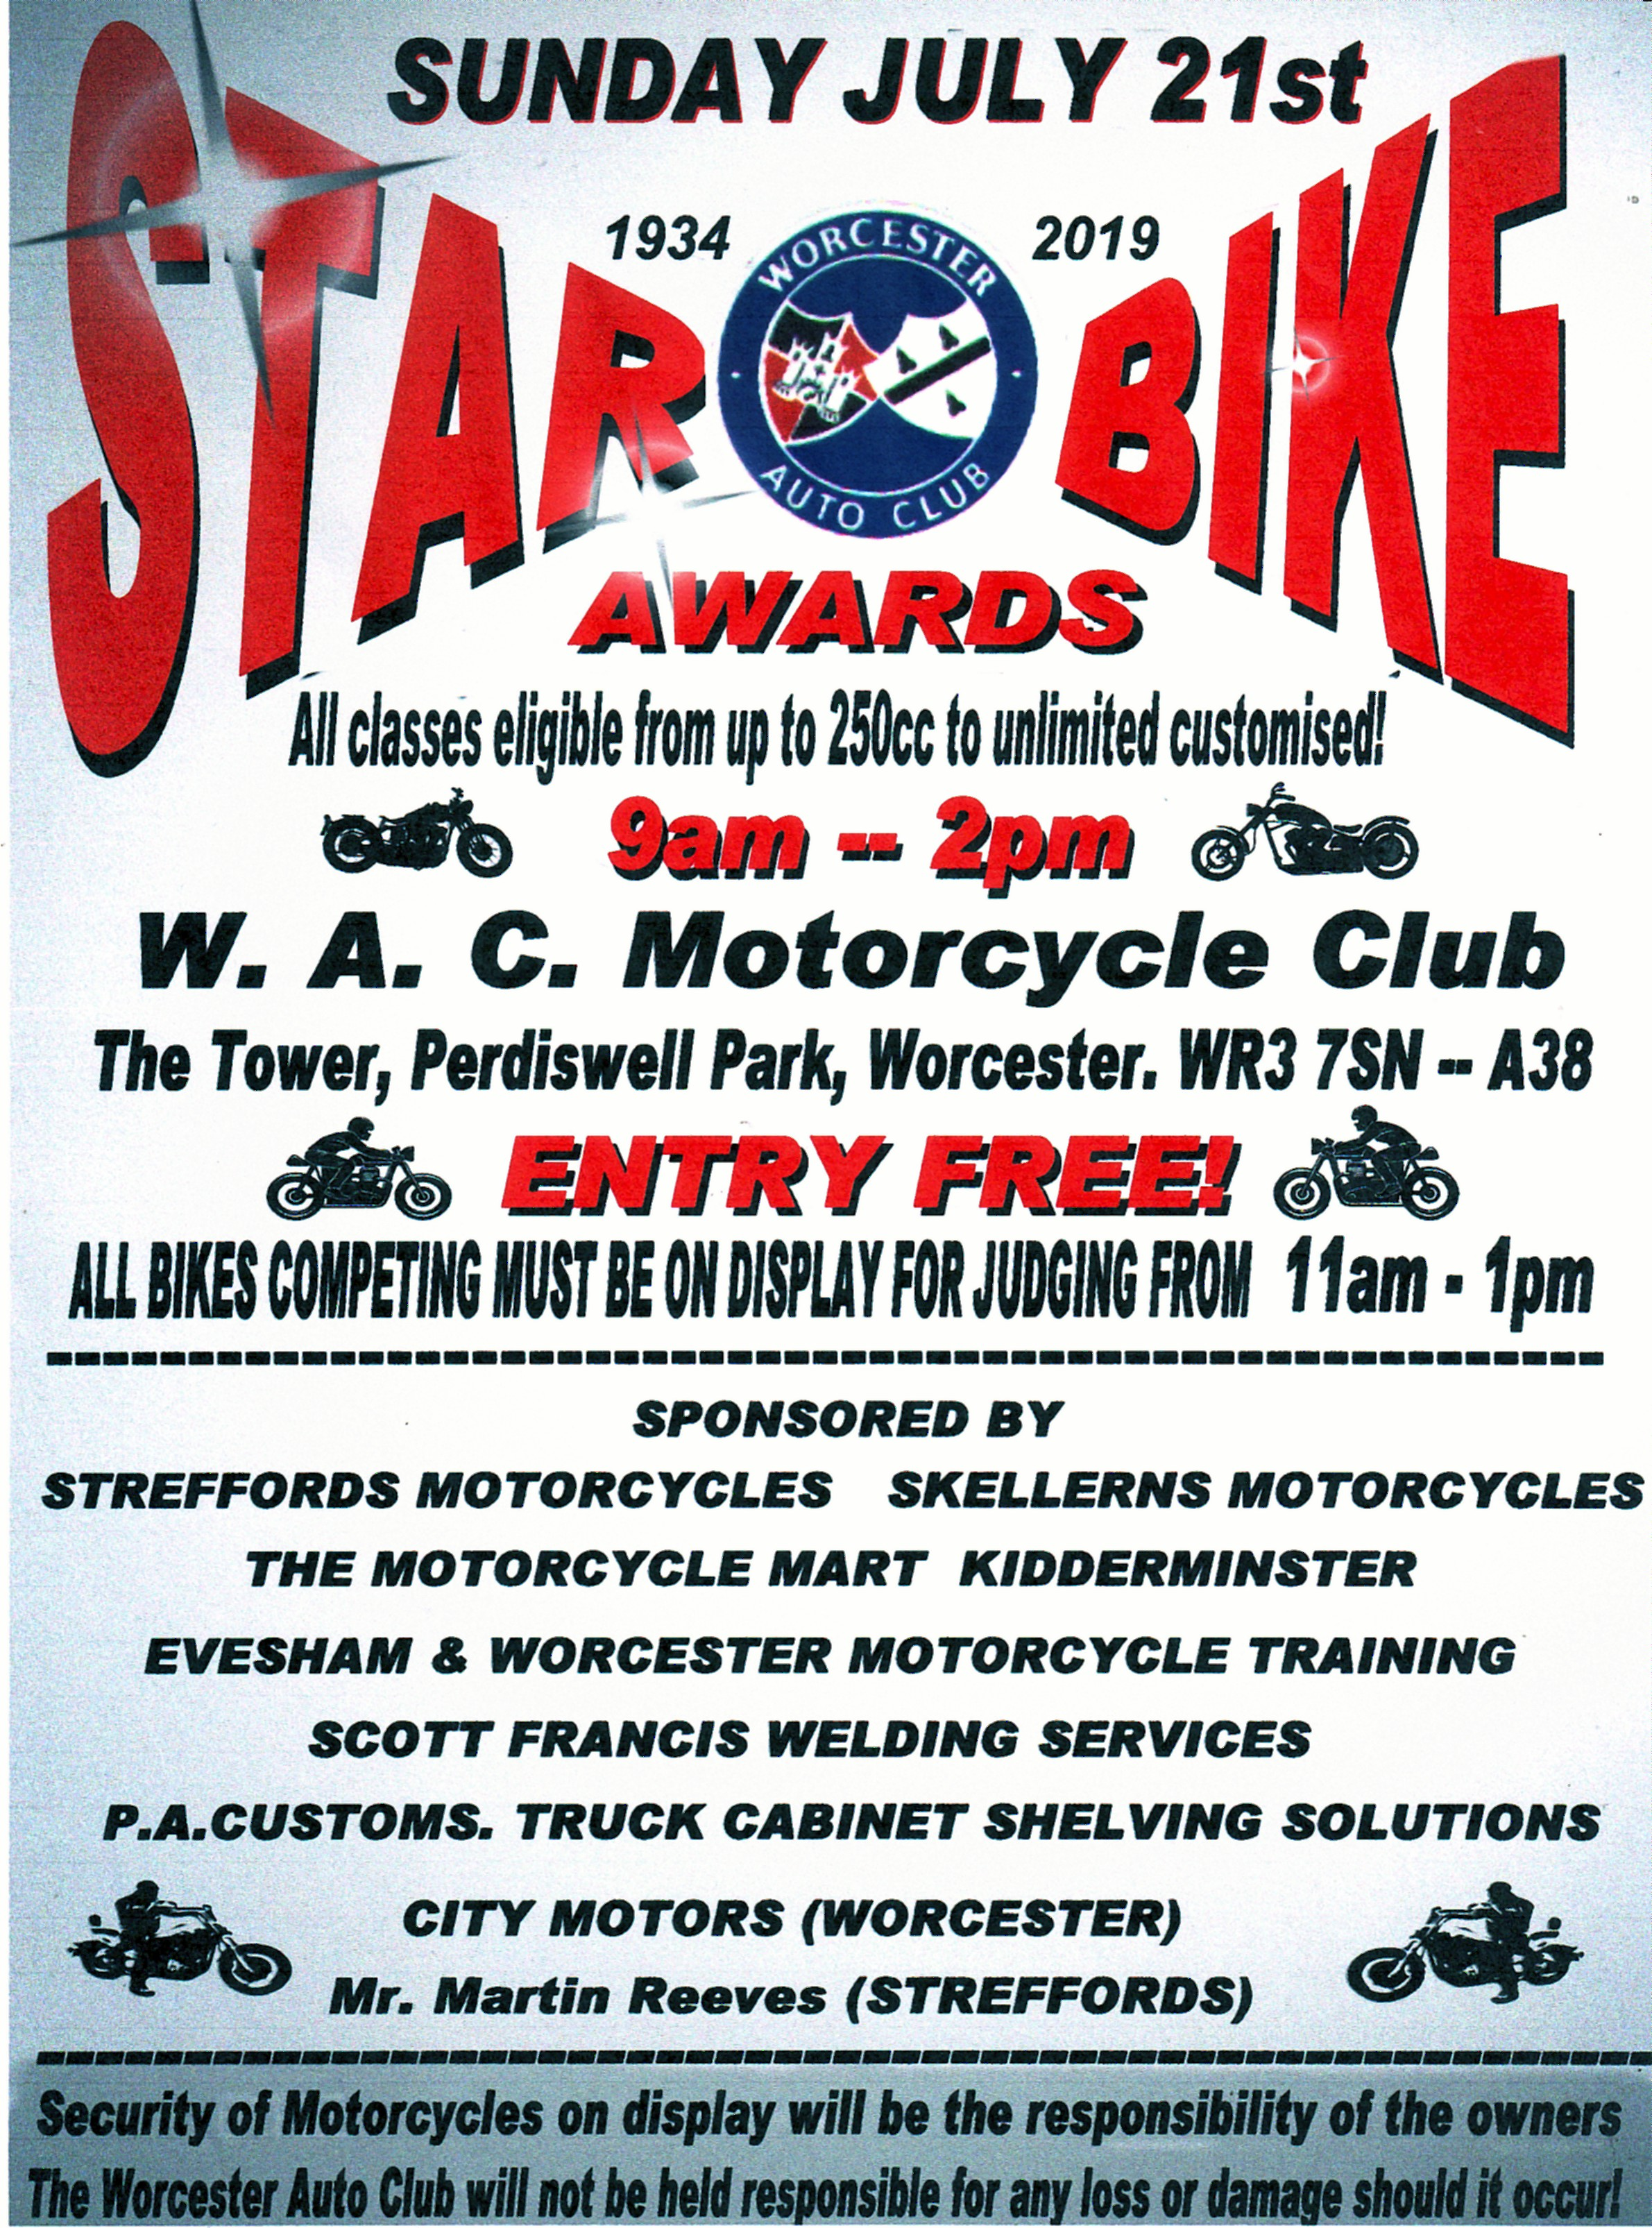 Star Bike Awards